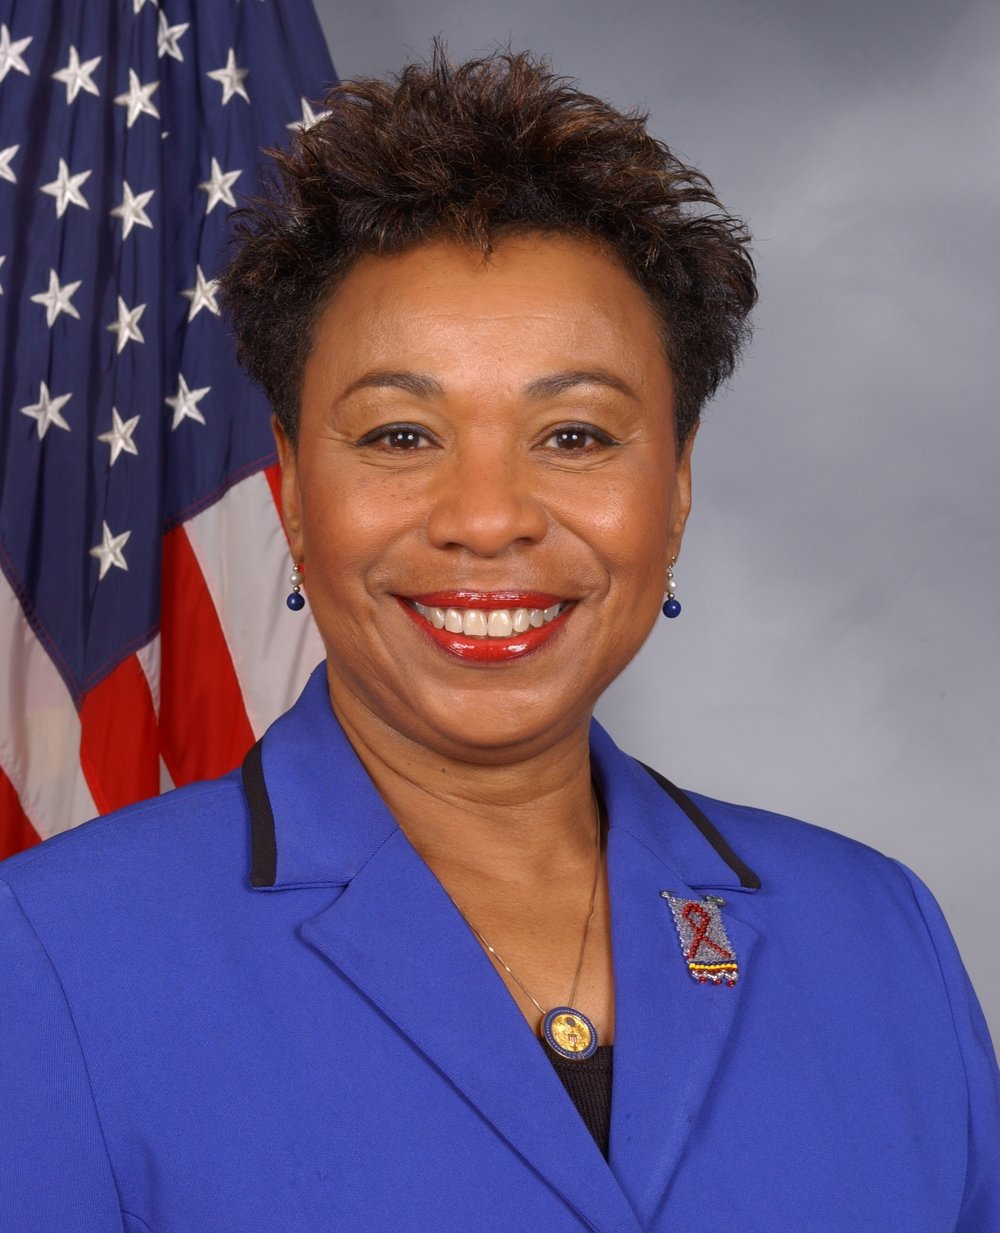 Representative Barbara  Lee (D) California - In 1998, Congresswoman Barbara Lee was elected to serve California's 9th congressional district (now the 13th) in a special election. In her time in office Representative Lee has been a champion for the poor while working on the powerful Appropriations Committee. In 2018 she introduced the REFER Act and the Marijuana Justice Act  to prohibit federal intrusion into state cannabis laws and begin to repair damage to communities of color for the failed War on Drugs, respectively. The bill is an attempt to keep the current administration from interfering in California's new legalized landscape.